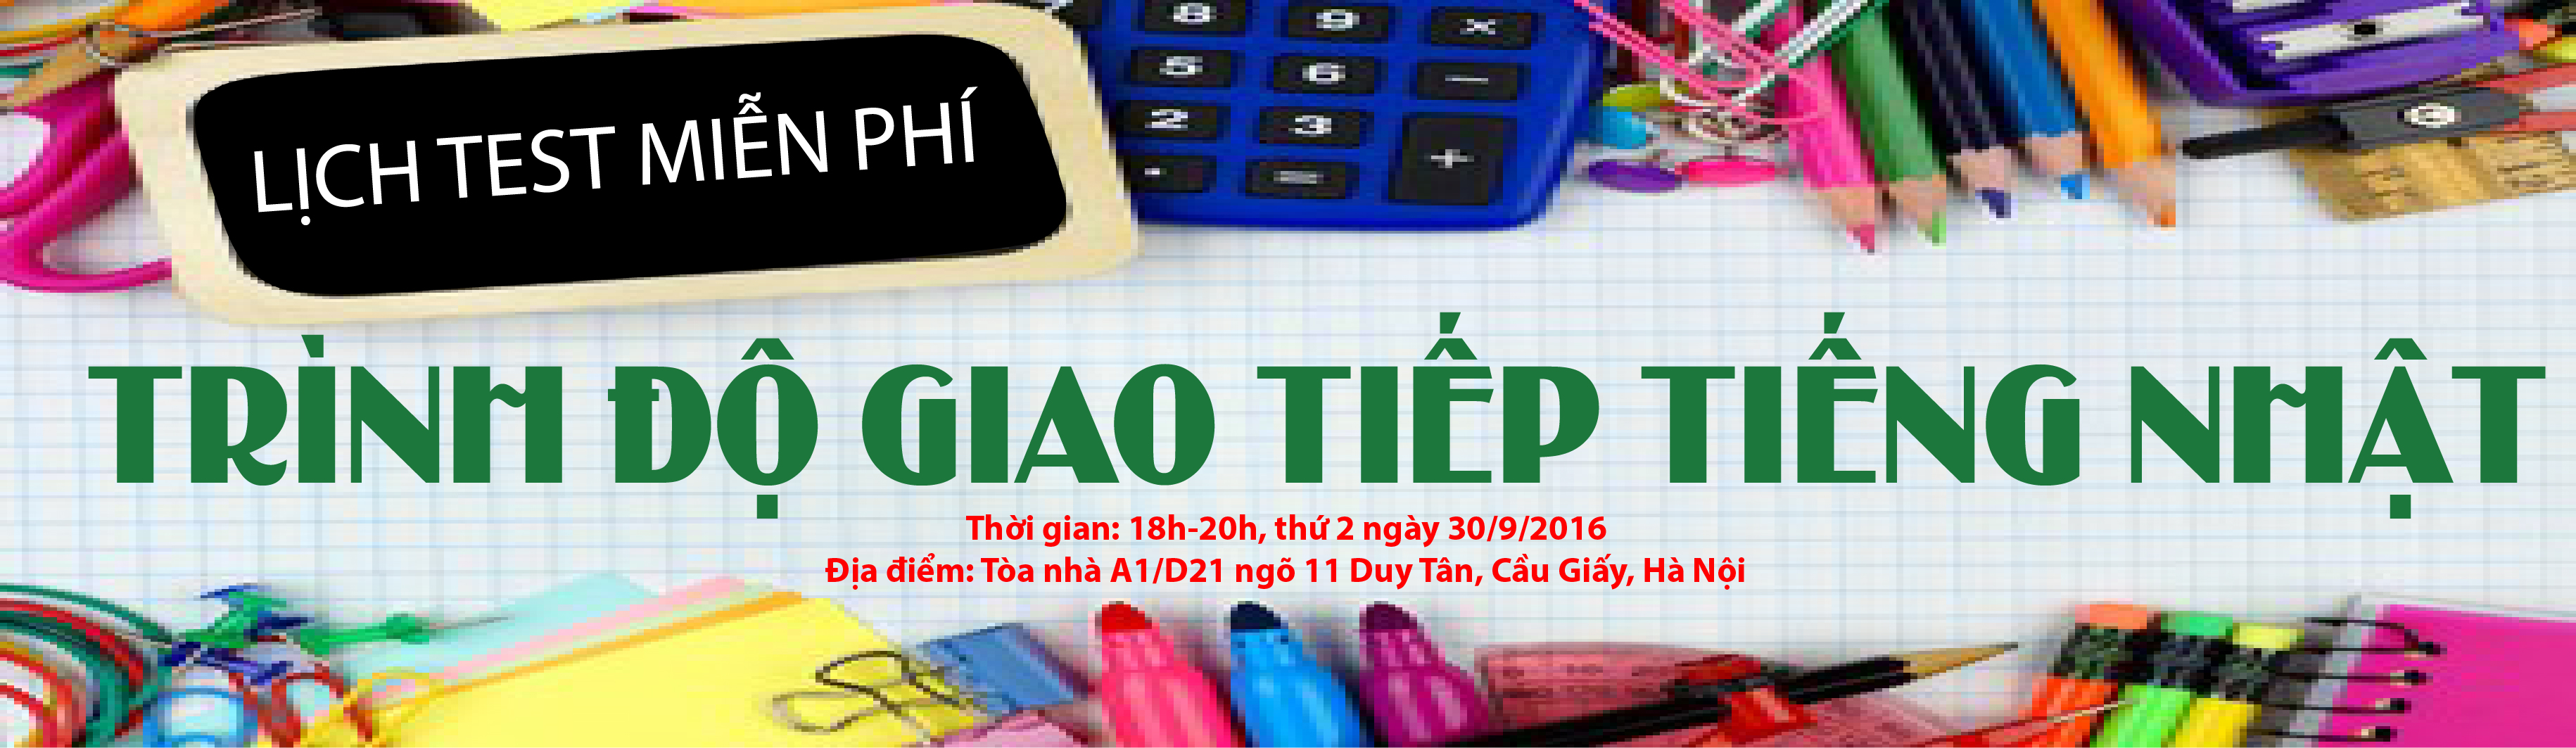 Lịch test giao tiếp Tiếng Nhật